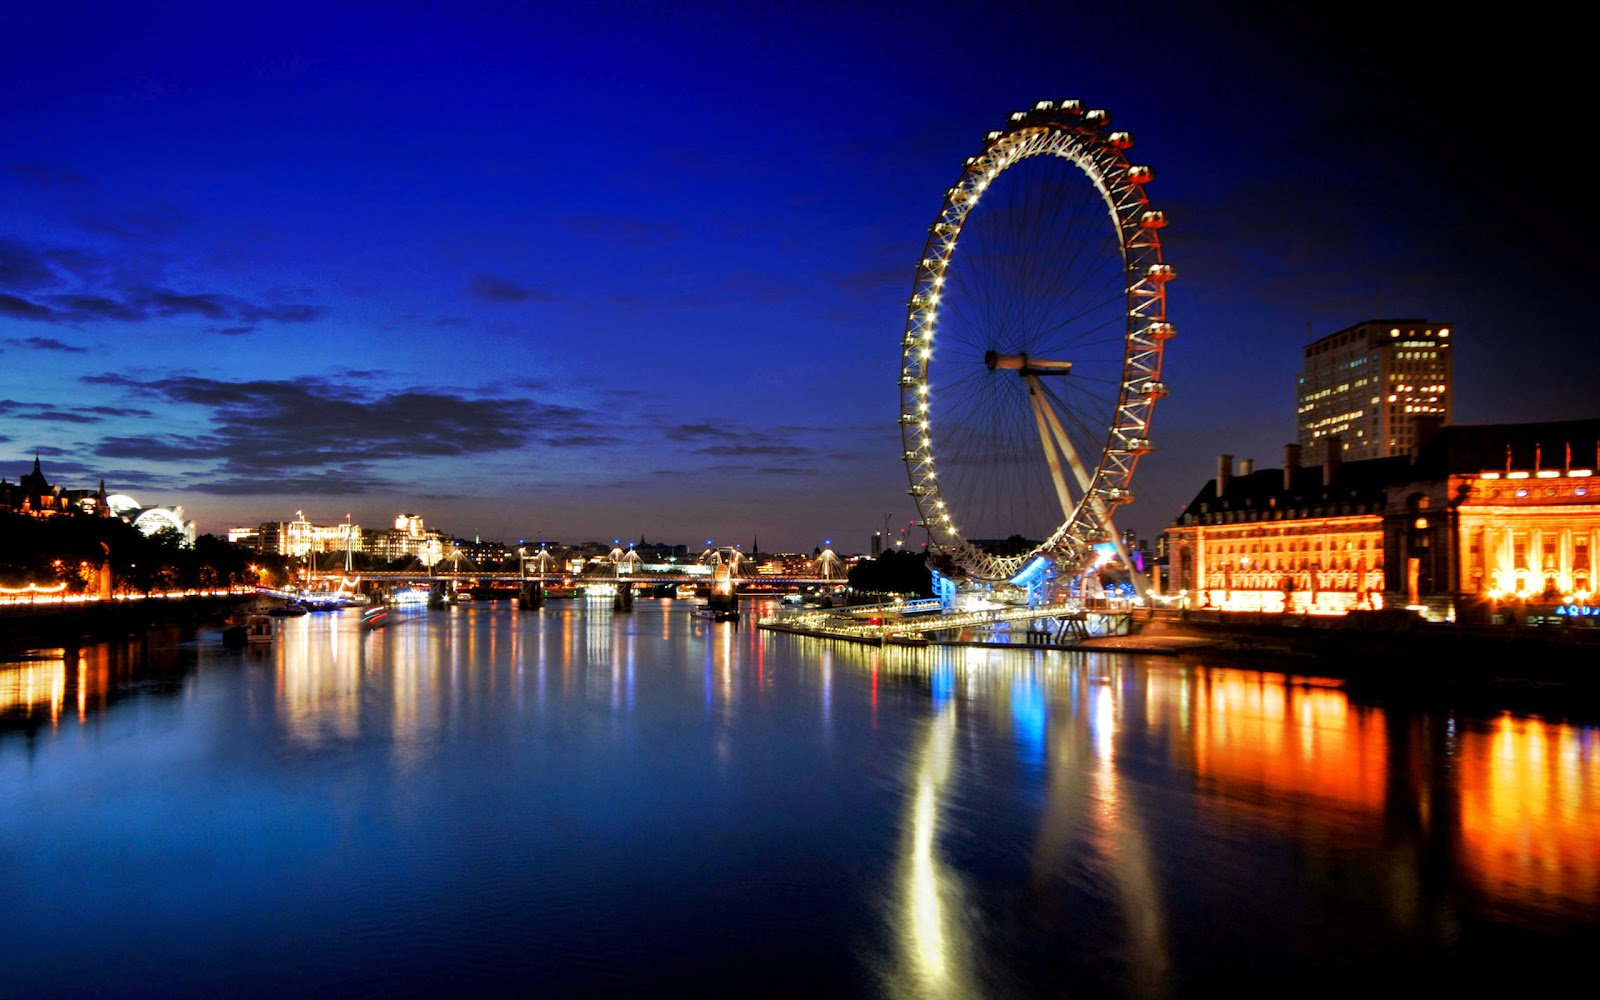 london eye-wide